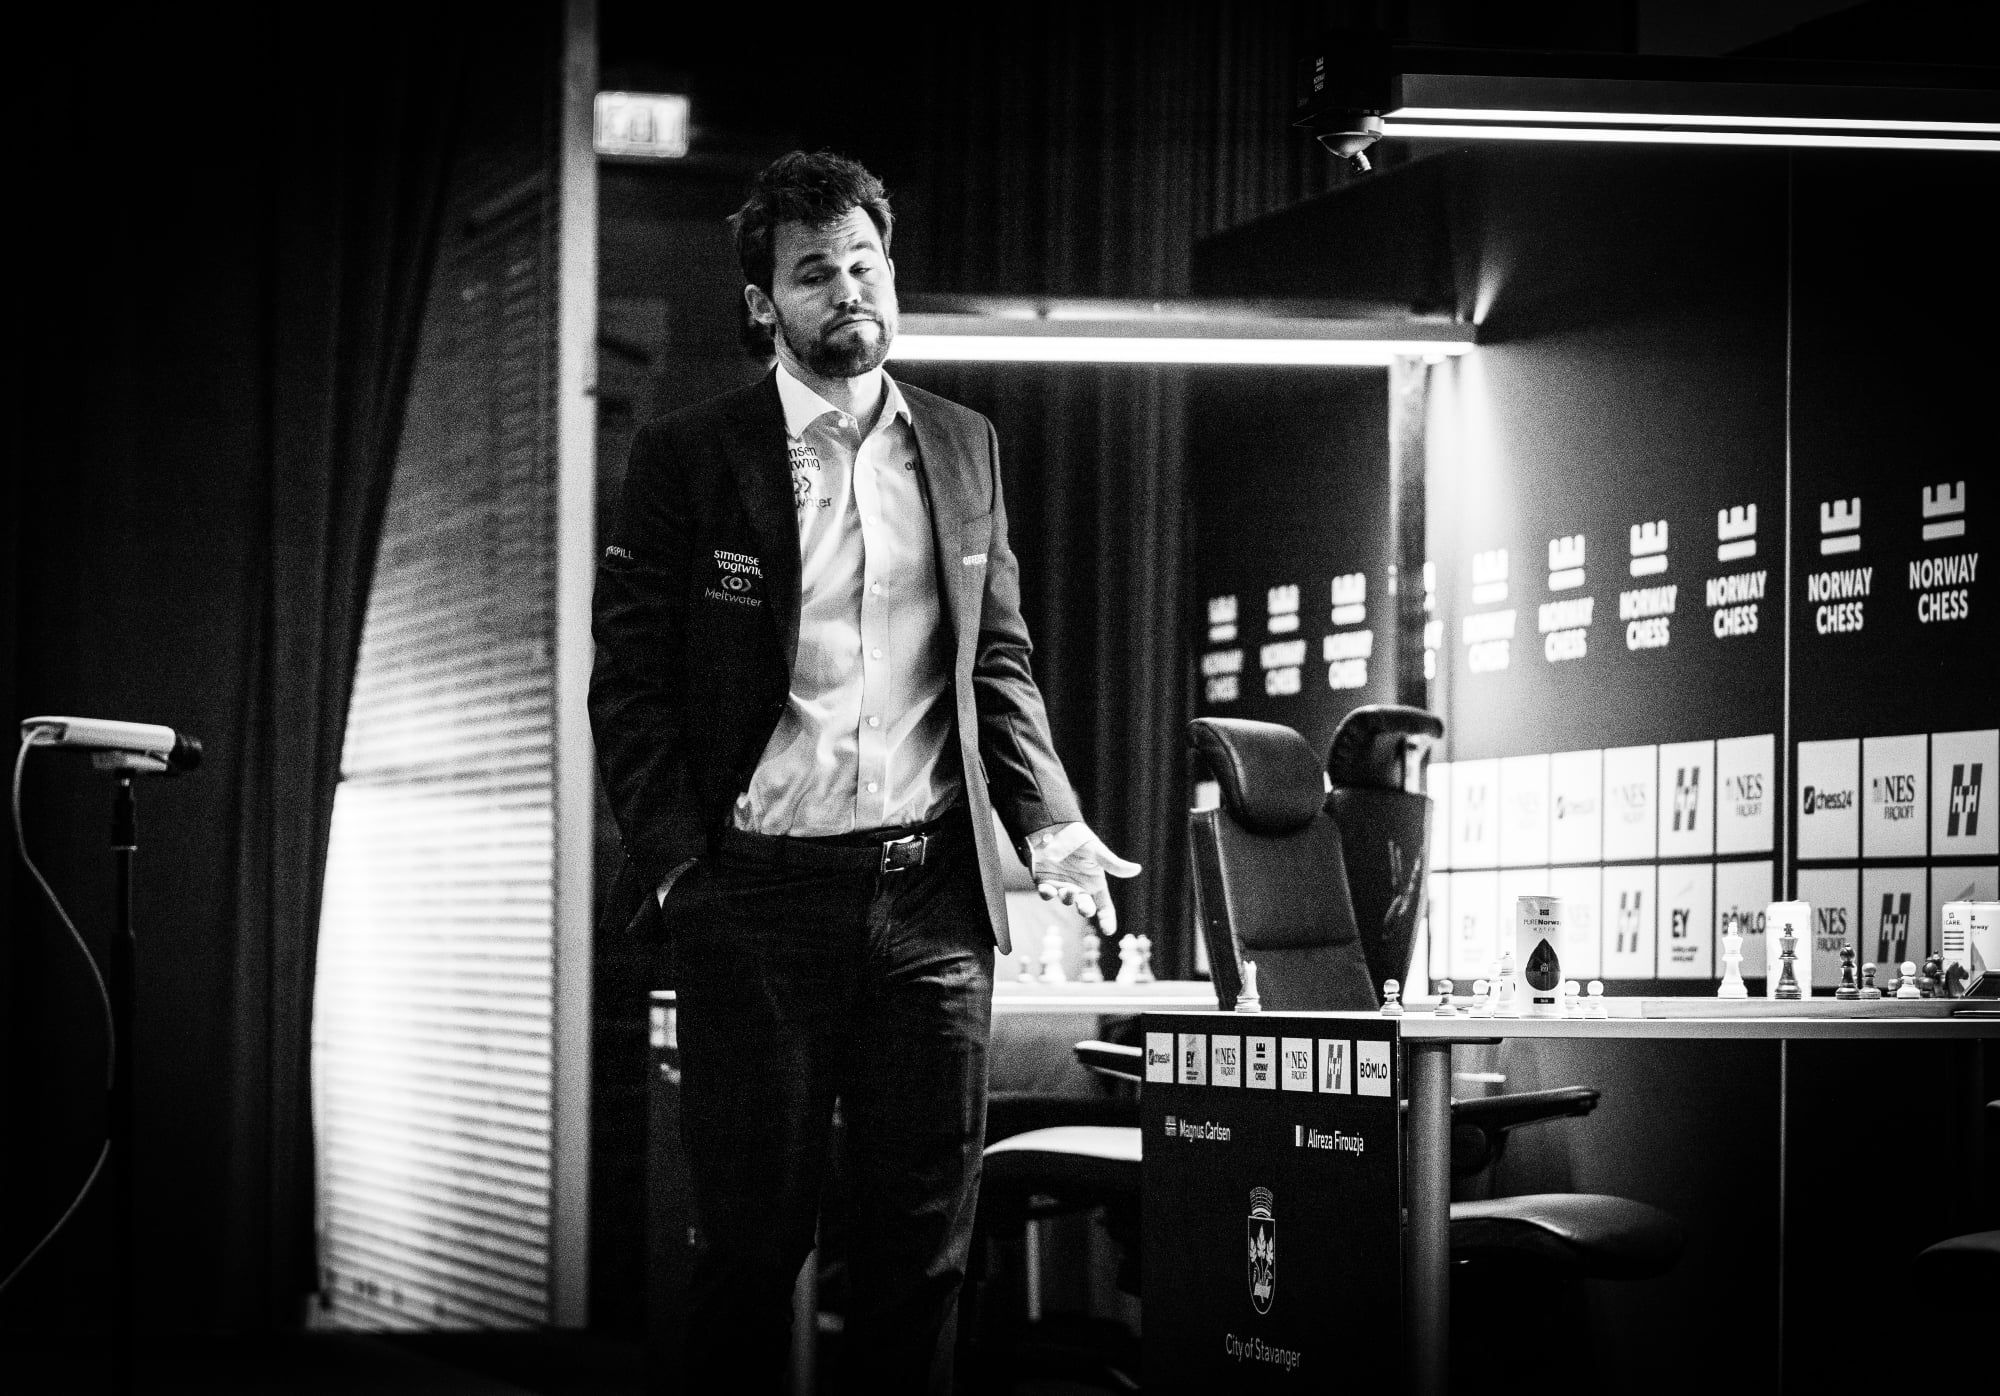 , Norway Chess R6: Rapport Extends Lead; Carlsen Wins 1st Classical Game,